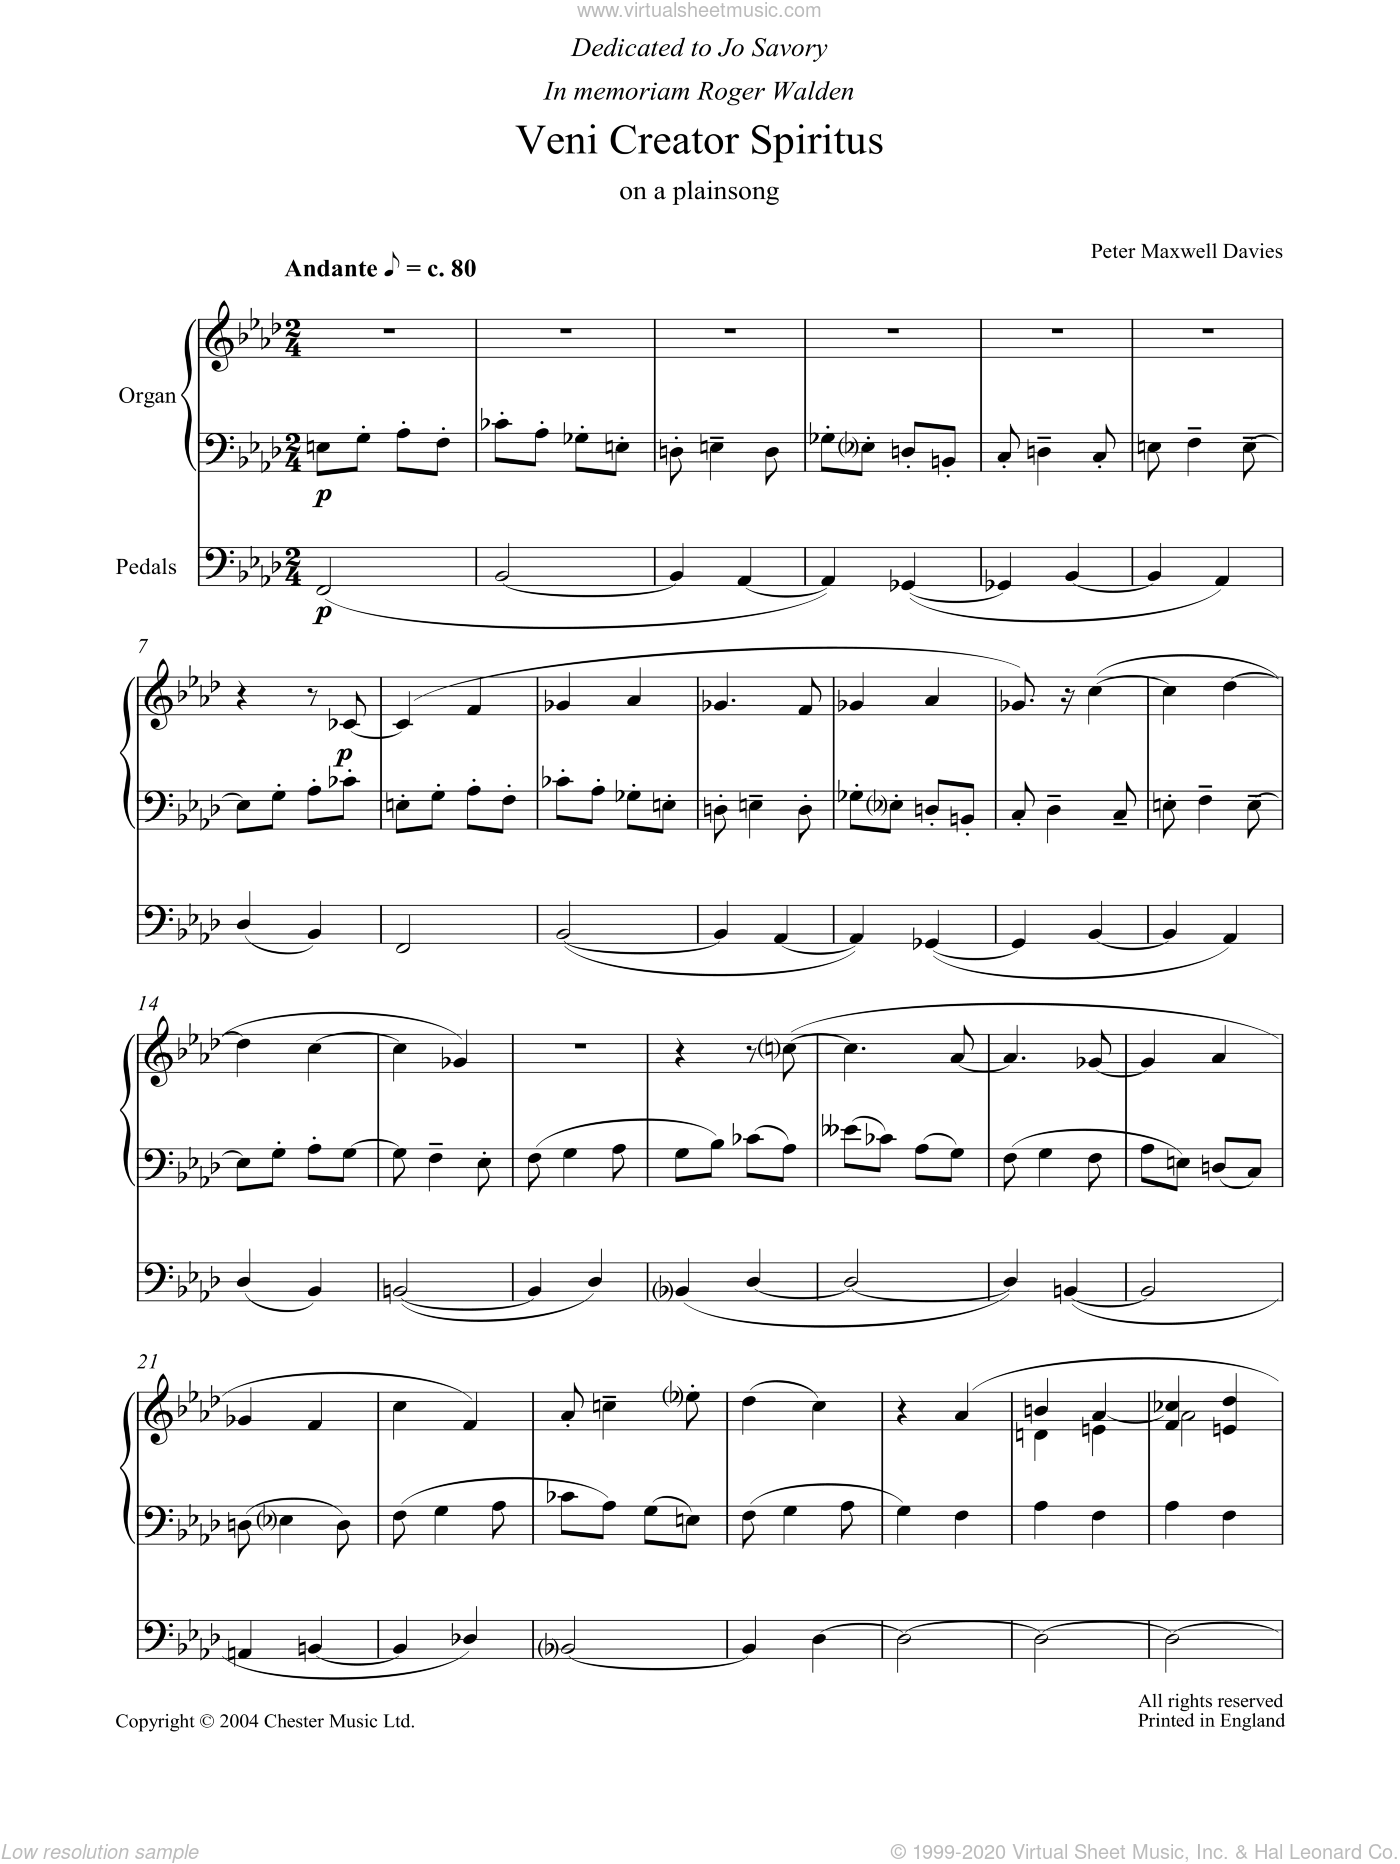 Veni Creator Spiritus sheet music for organ by Peter Maxwell Davies, classical score, intermediate